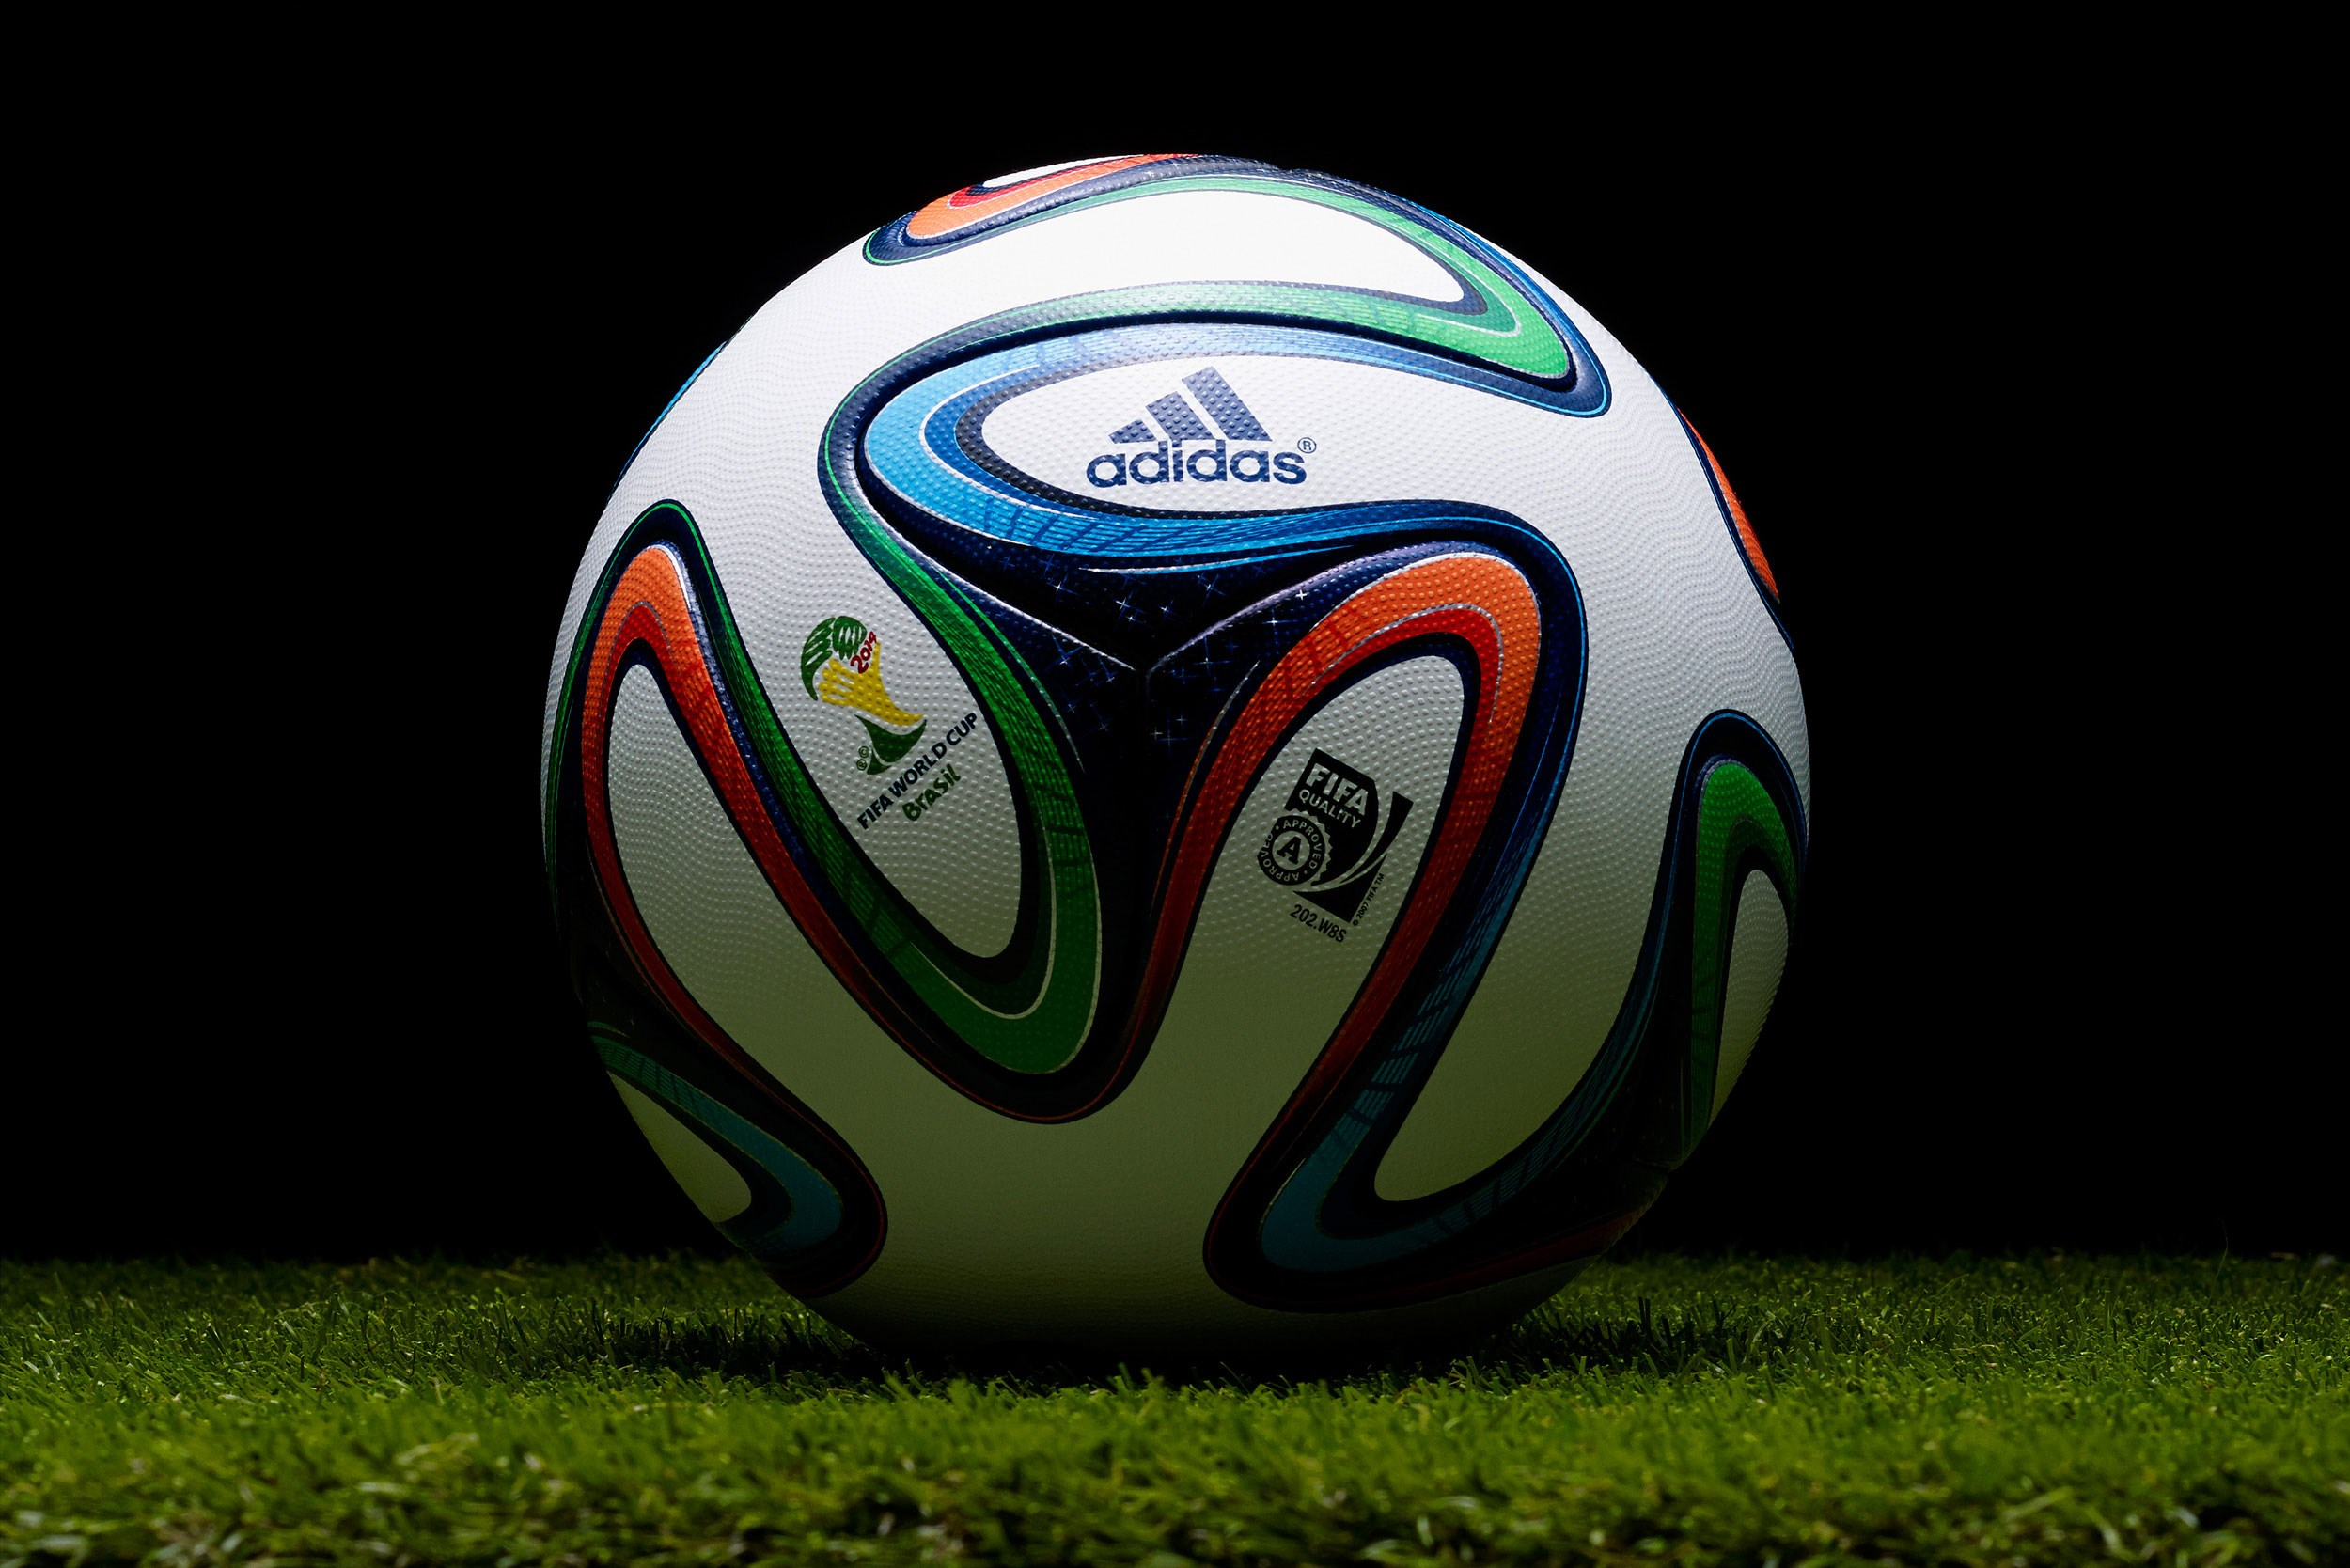 HQ-Definition-Desktop-soccer-ball-image-wallpaper-wp3401137